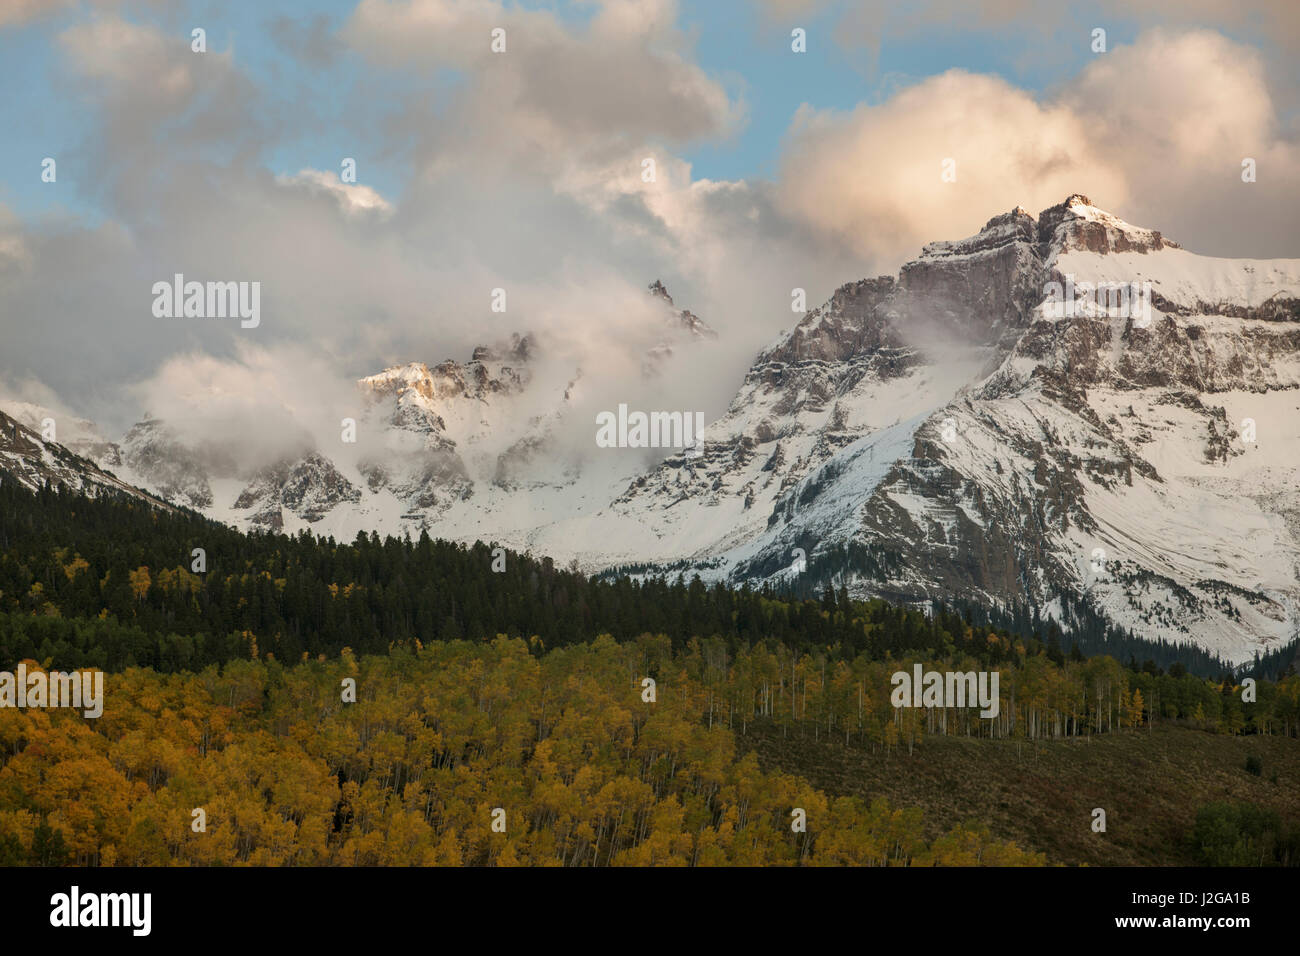 USA, Colorado, Sneffels Range. Clouds over mountain landscape. Credit as: Don Grall / Jaynes Gallery / DanitaDelimont.com - Stock Image